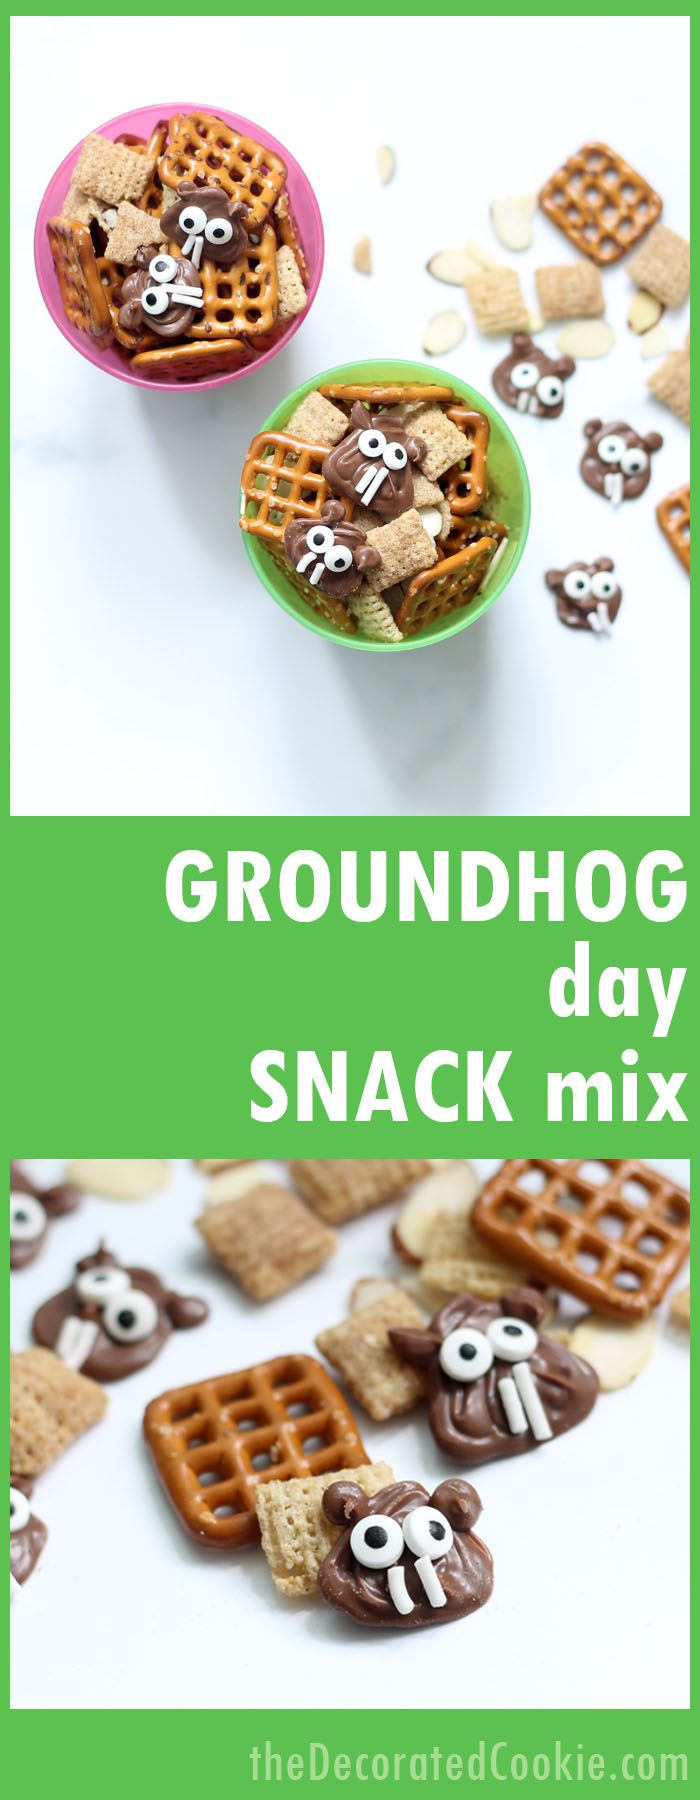 Groundhog Day snack mix! Cute and fun treat for groundhog day. Great classroom treat idea. Fun food.